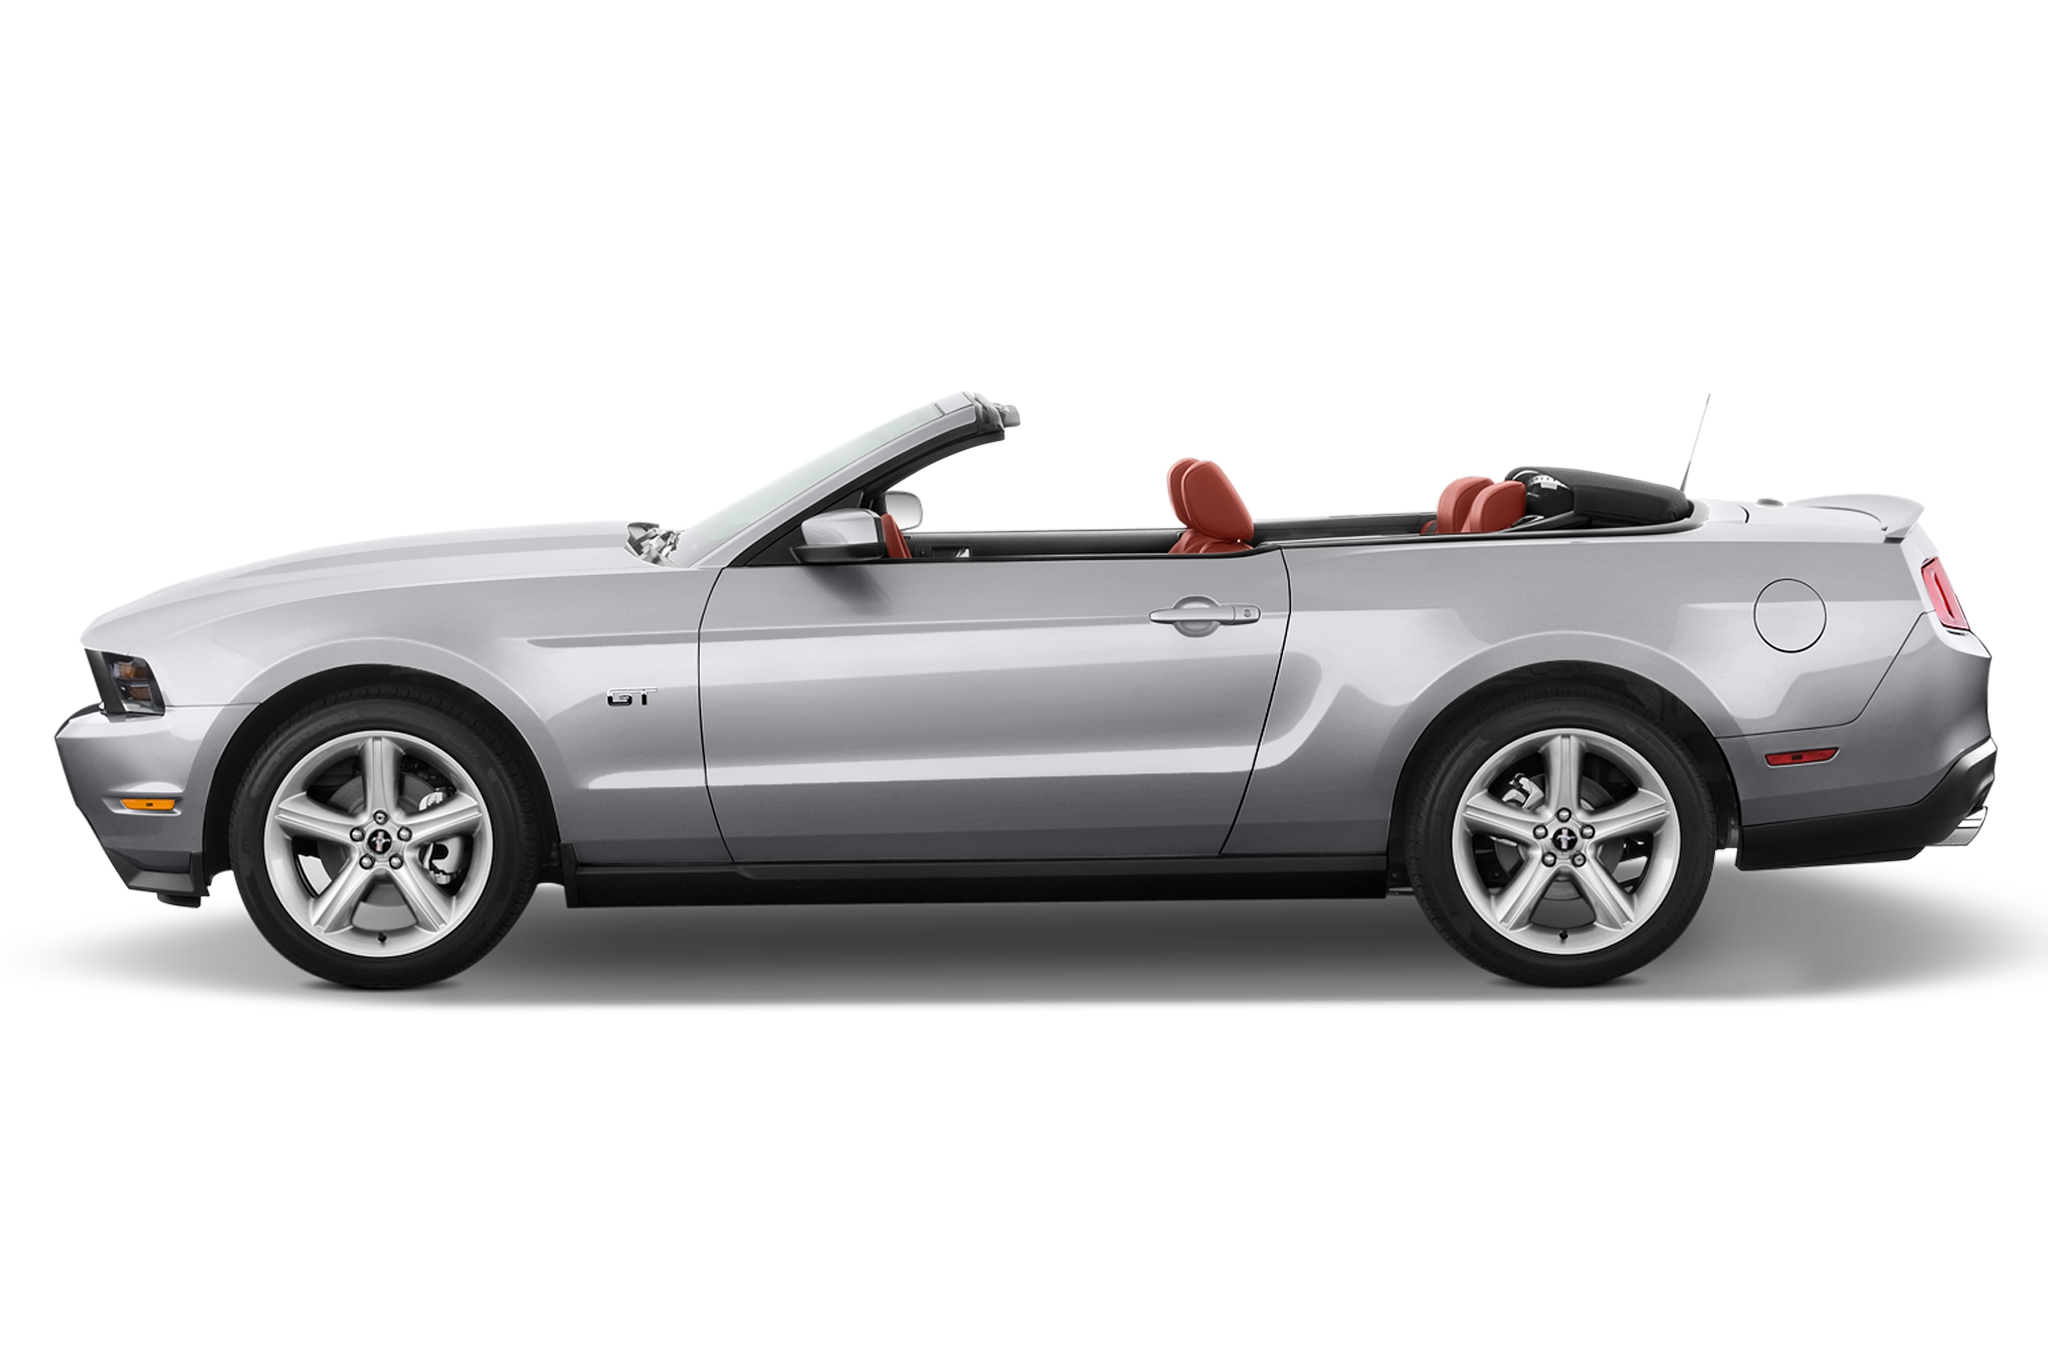 2010 ford mustang gt ford sport coupe review. Black Bedroom Furniture Sets. Home Design Ideas